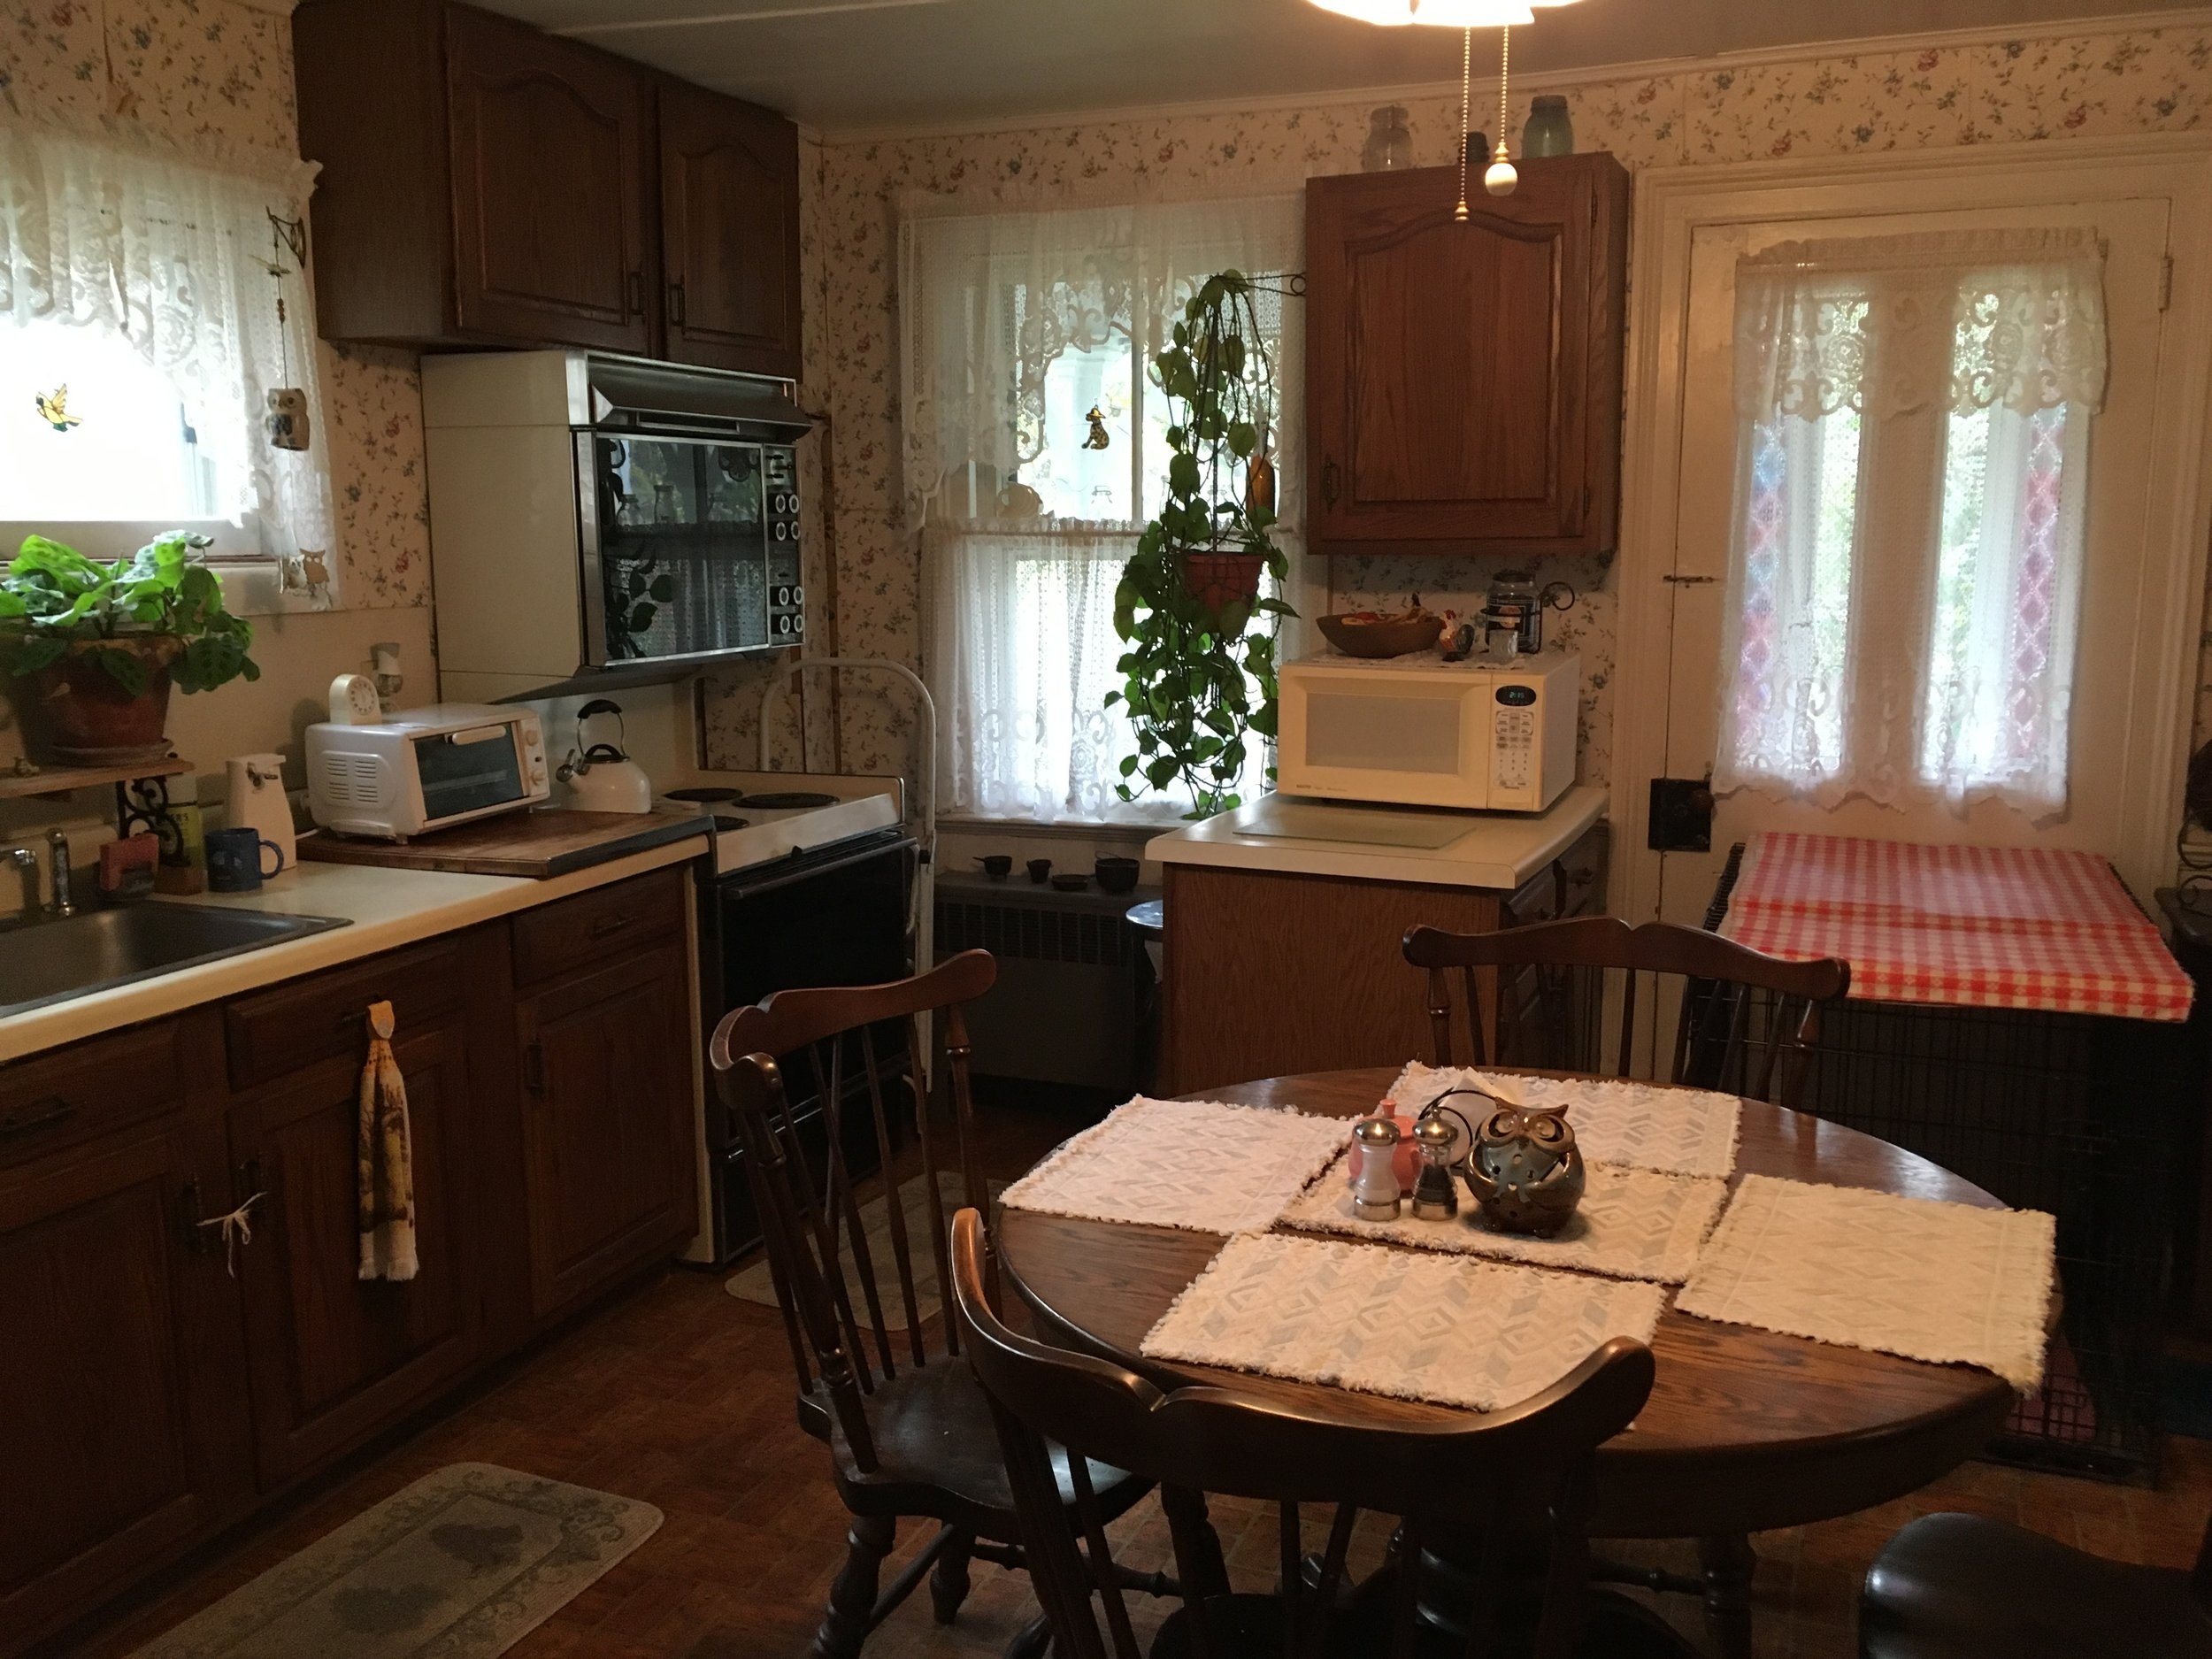 listing kitchen.jpg